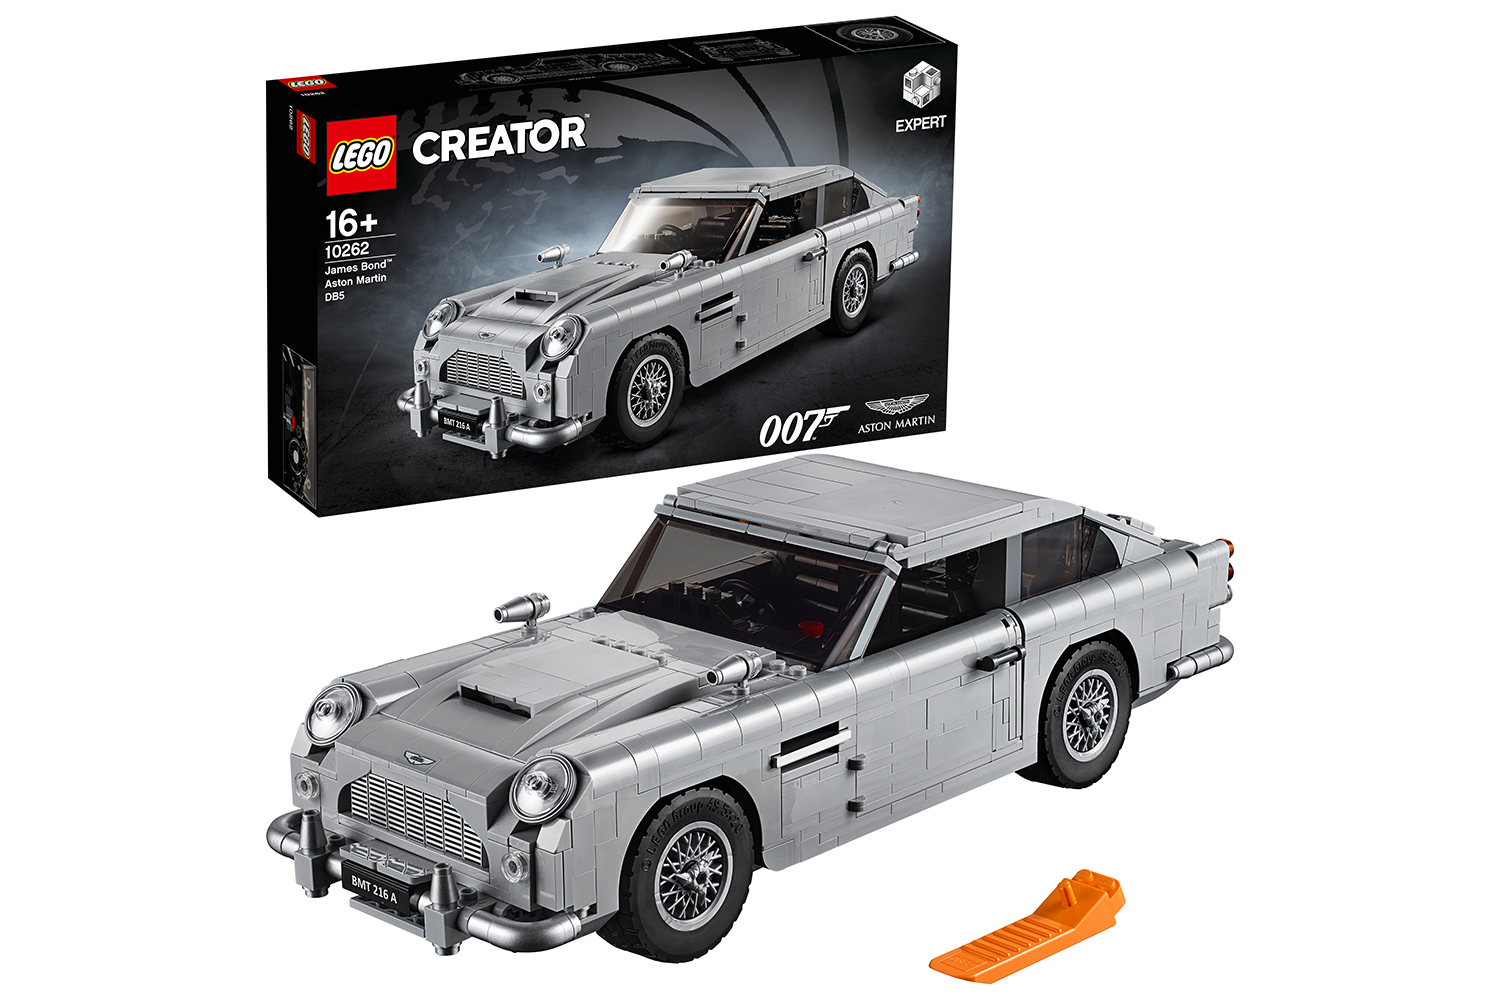 lego-creator-expert-james-bond-007-aston-martin-db5-10262/